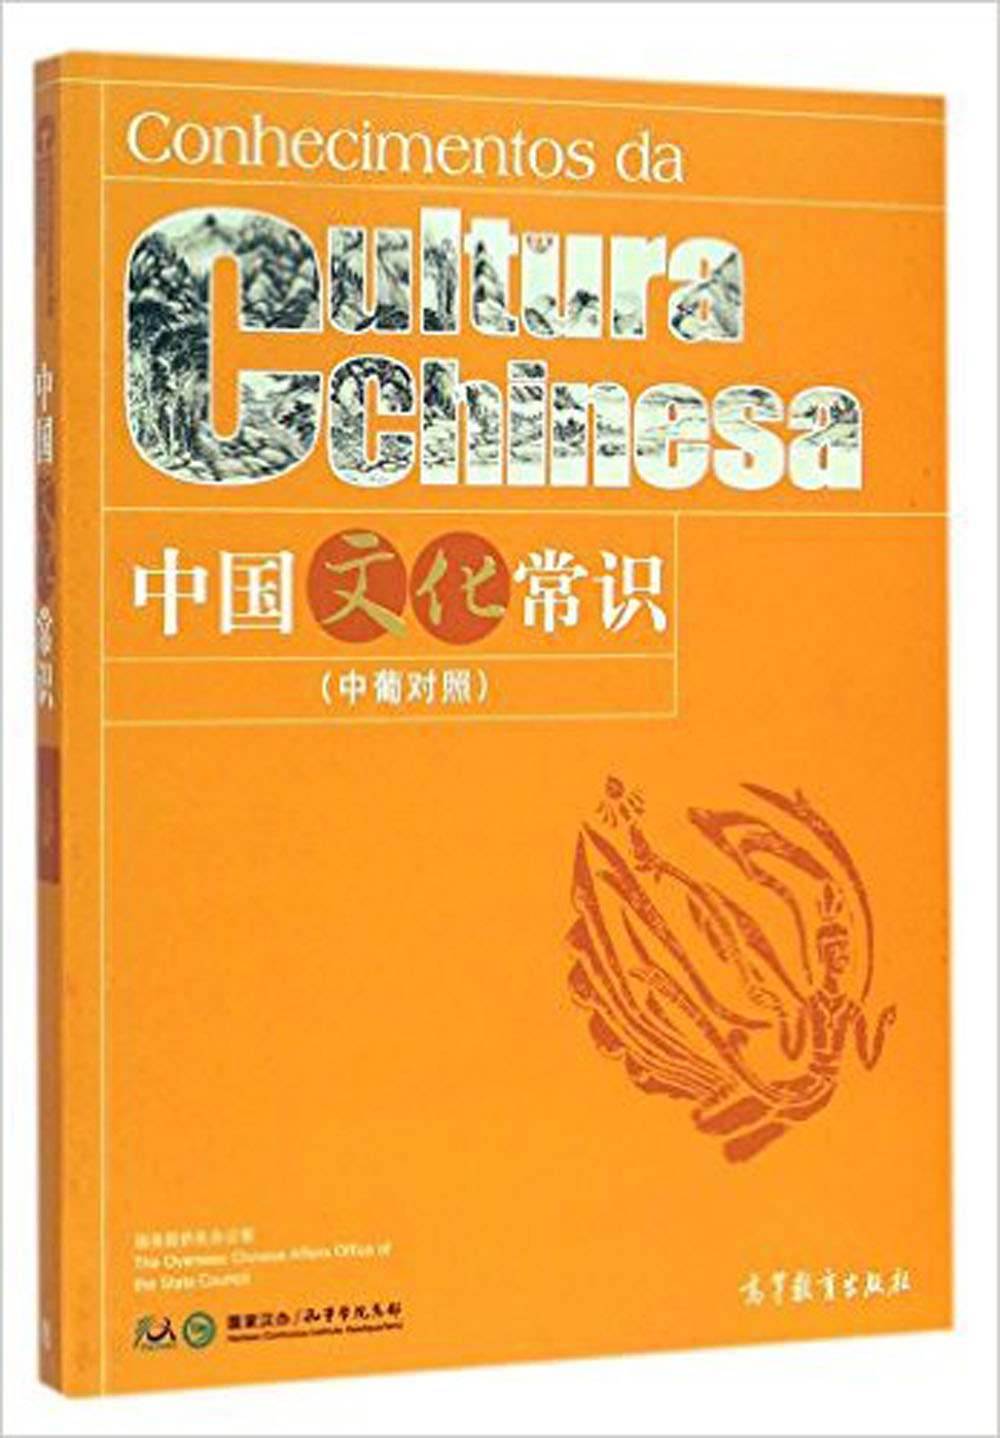 Common Knowledge about Chinese Culture (Language In Chinese and Portuguese) 281 Page for adult learn chinese culture <br>